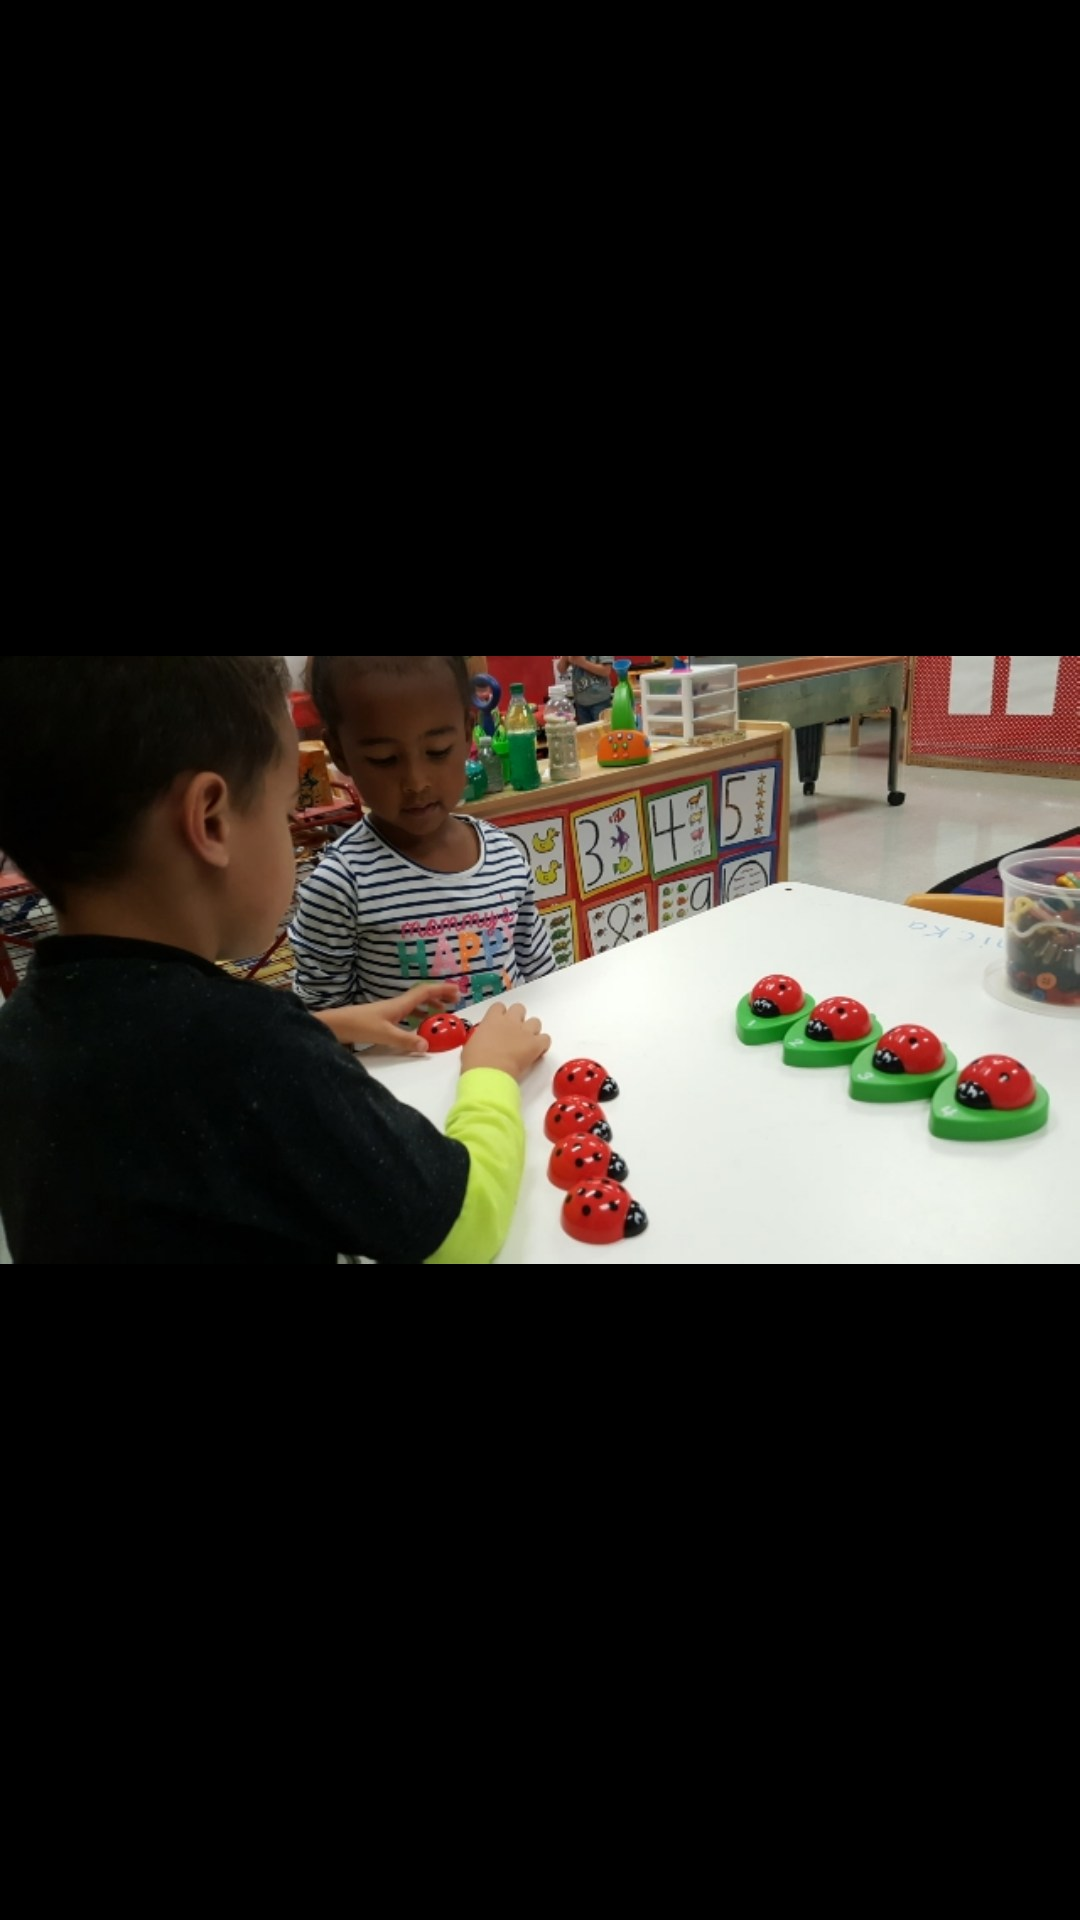 Counting /matching numbers 1-10